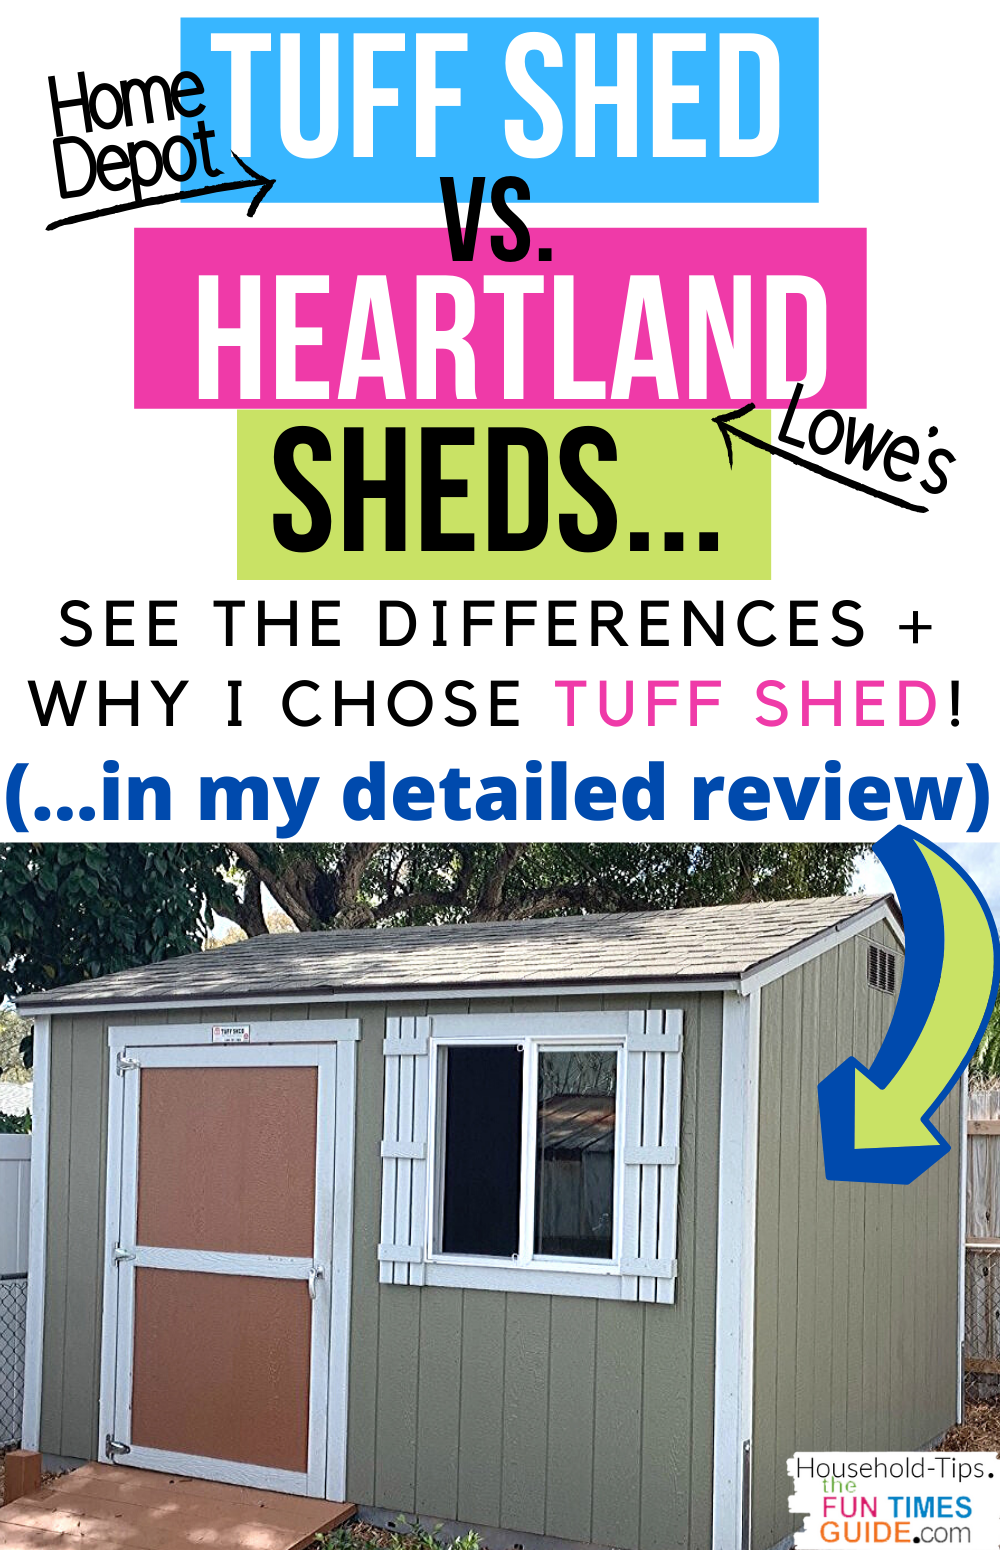 Are Home Depot Tuff Sheds Good? My Wood Tuff Shed Review [With Comparisons To Heartland Sheds From Lowes]